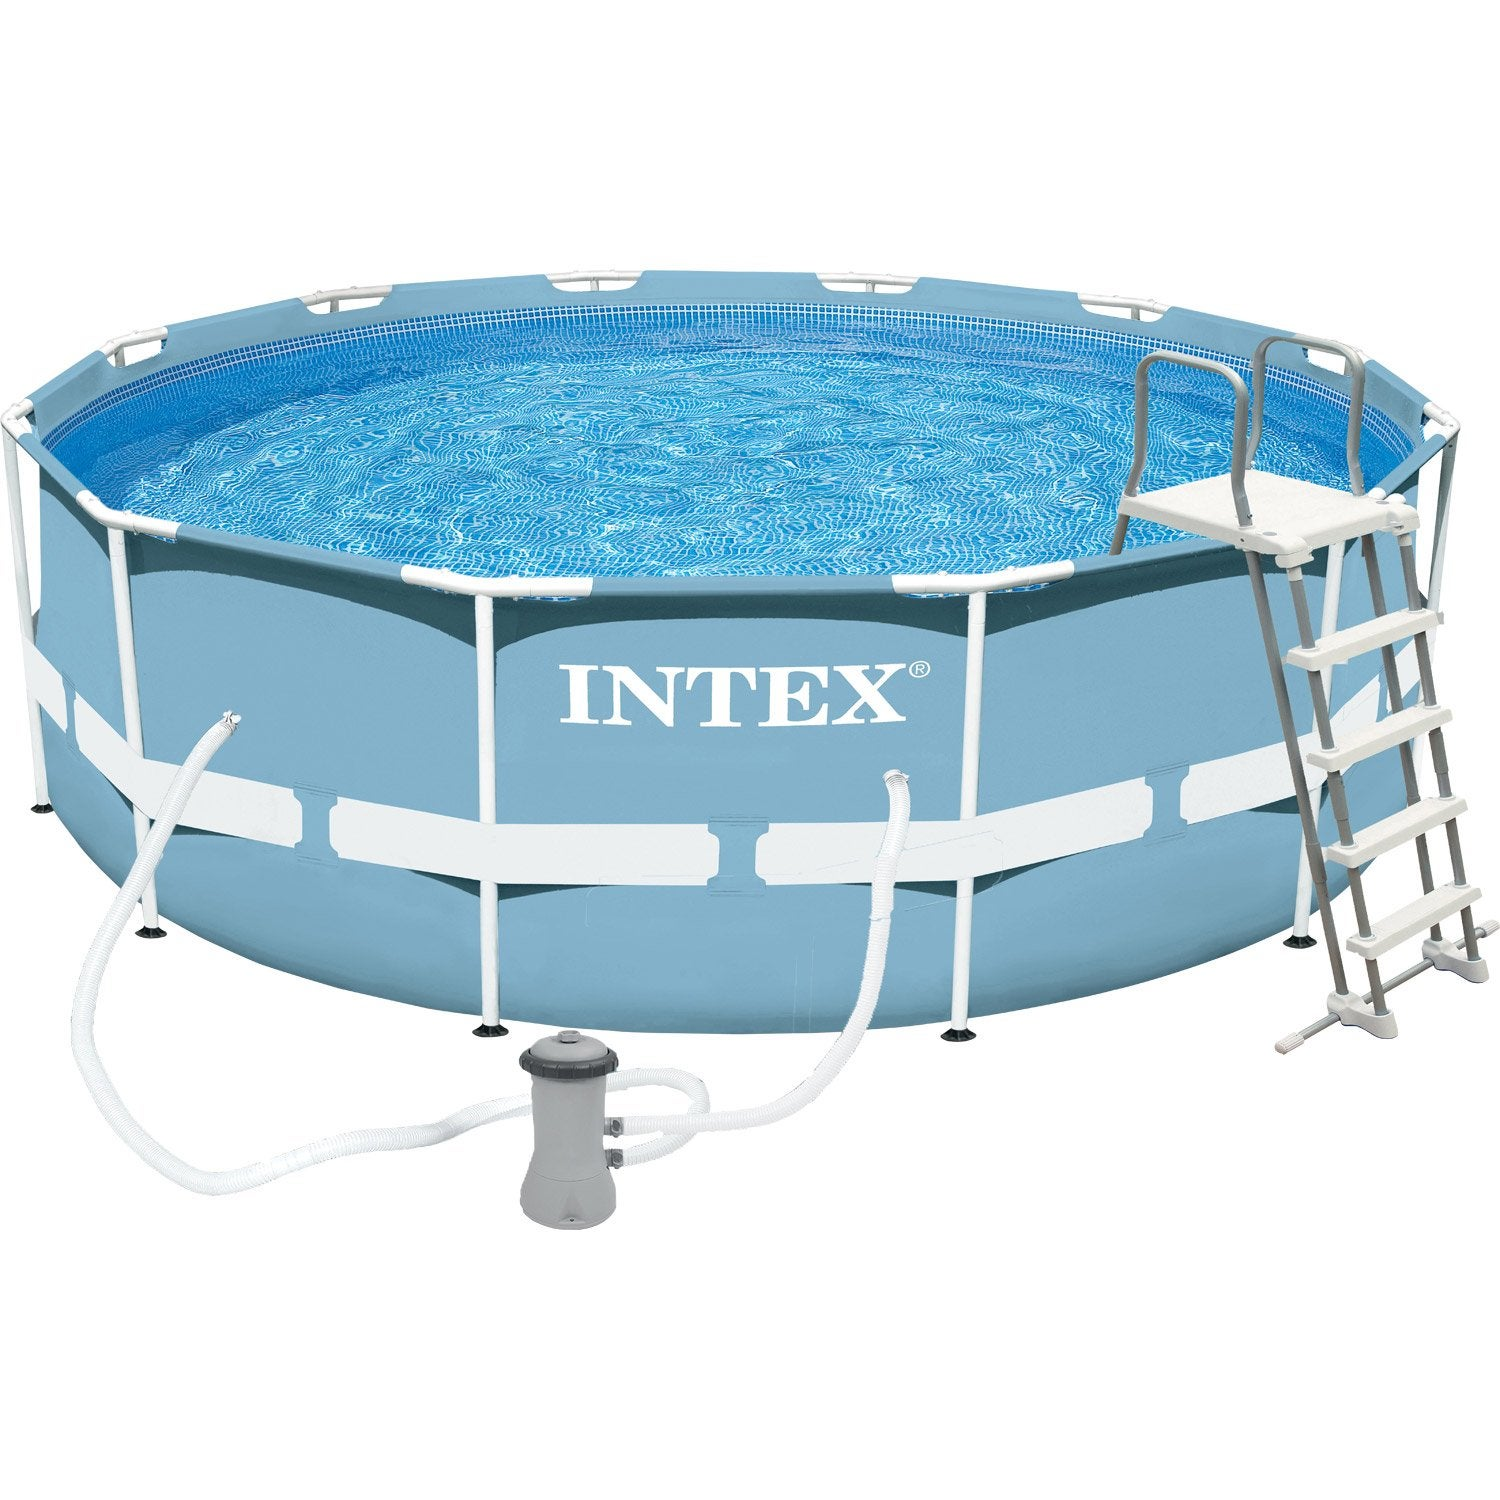 Piscine hors sol autoportante tubulaire prism frame intex for Piscine tubulaire leclerc